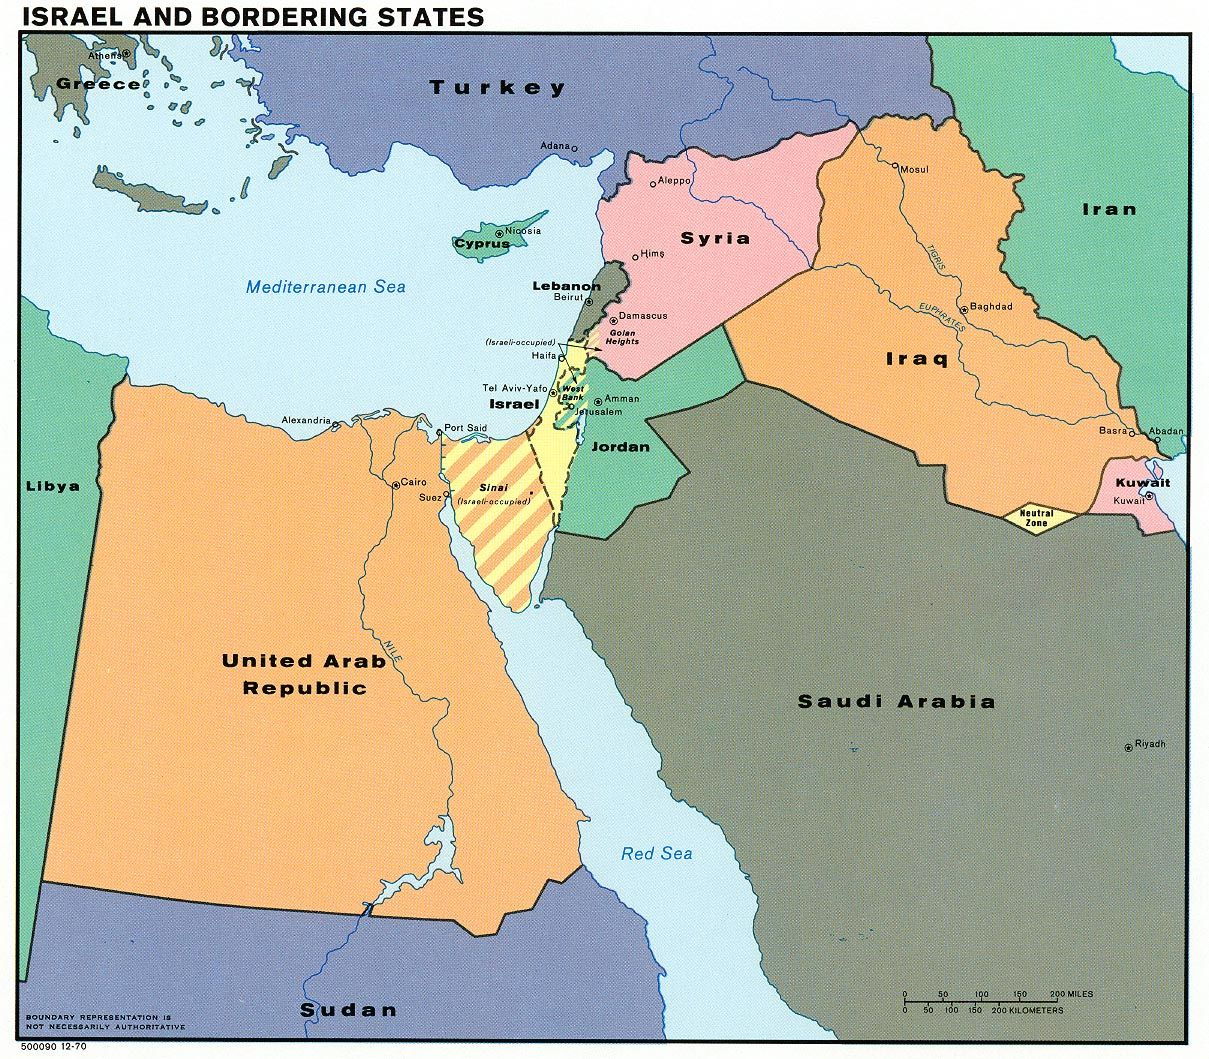 Israel  Middle East  Pinterest  Israel Israel country and